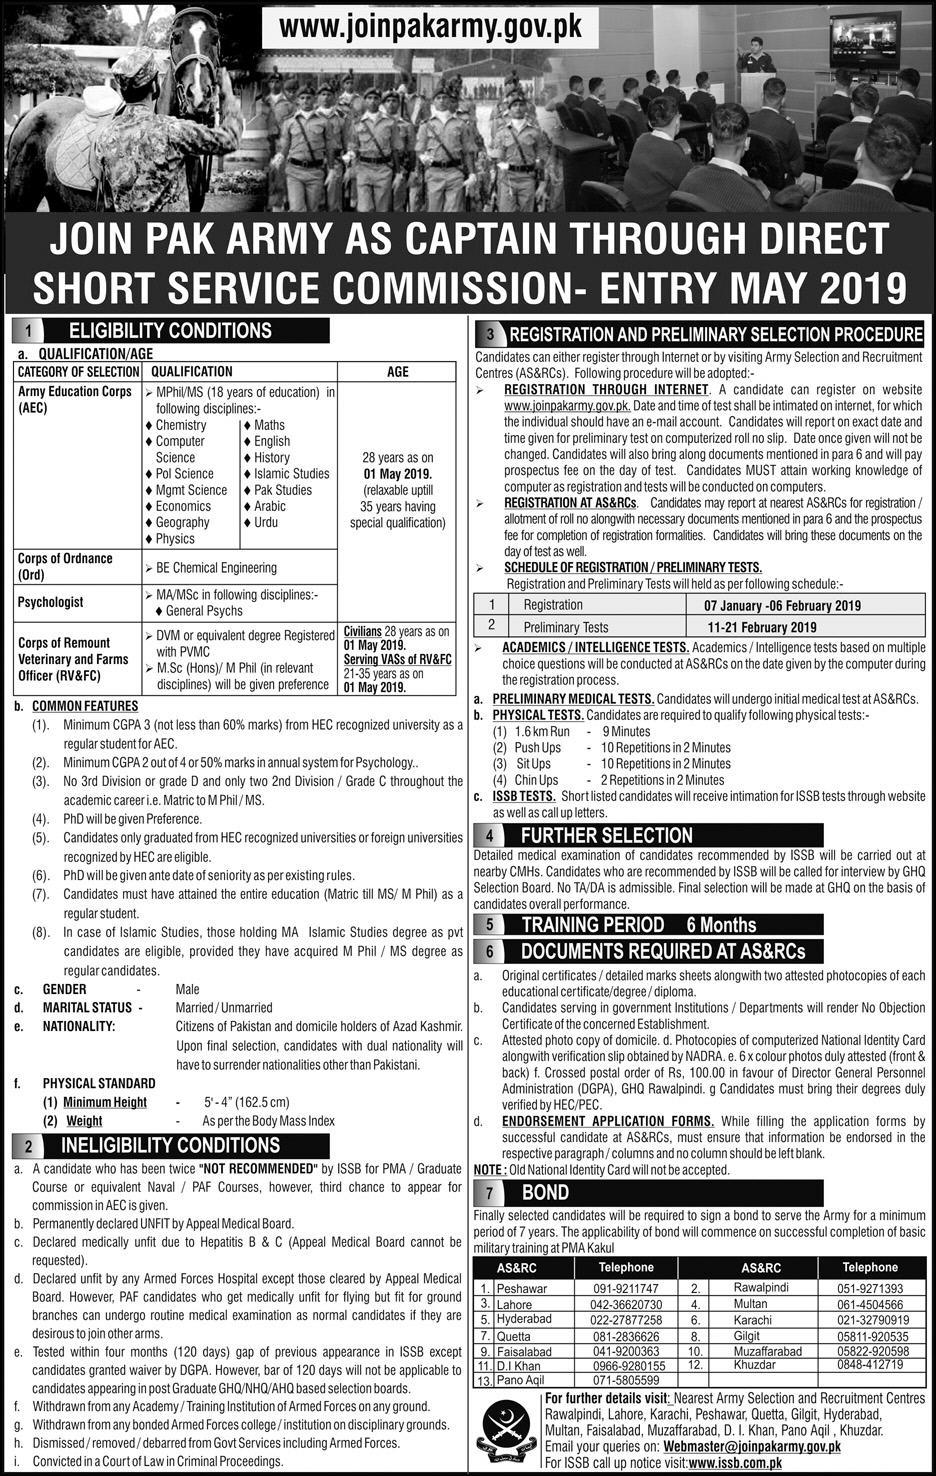 Join Pak Army as Captain Through SSC 2019 (Short Service Commission)